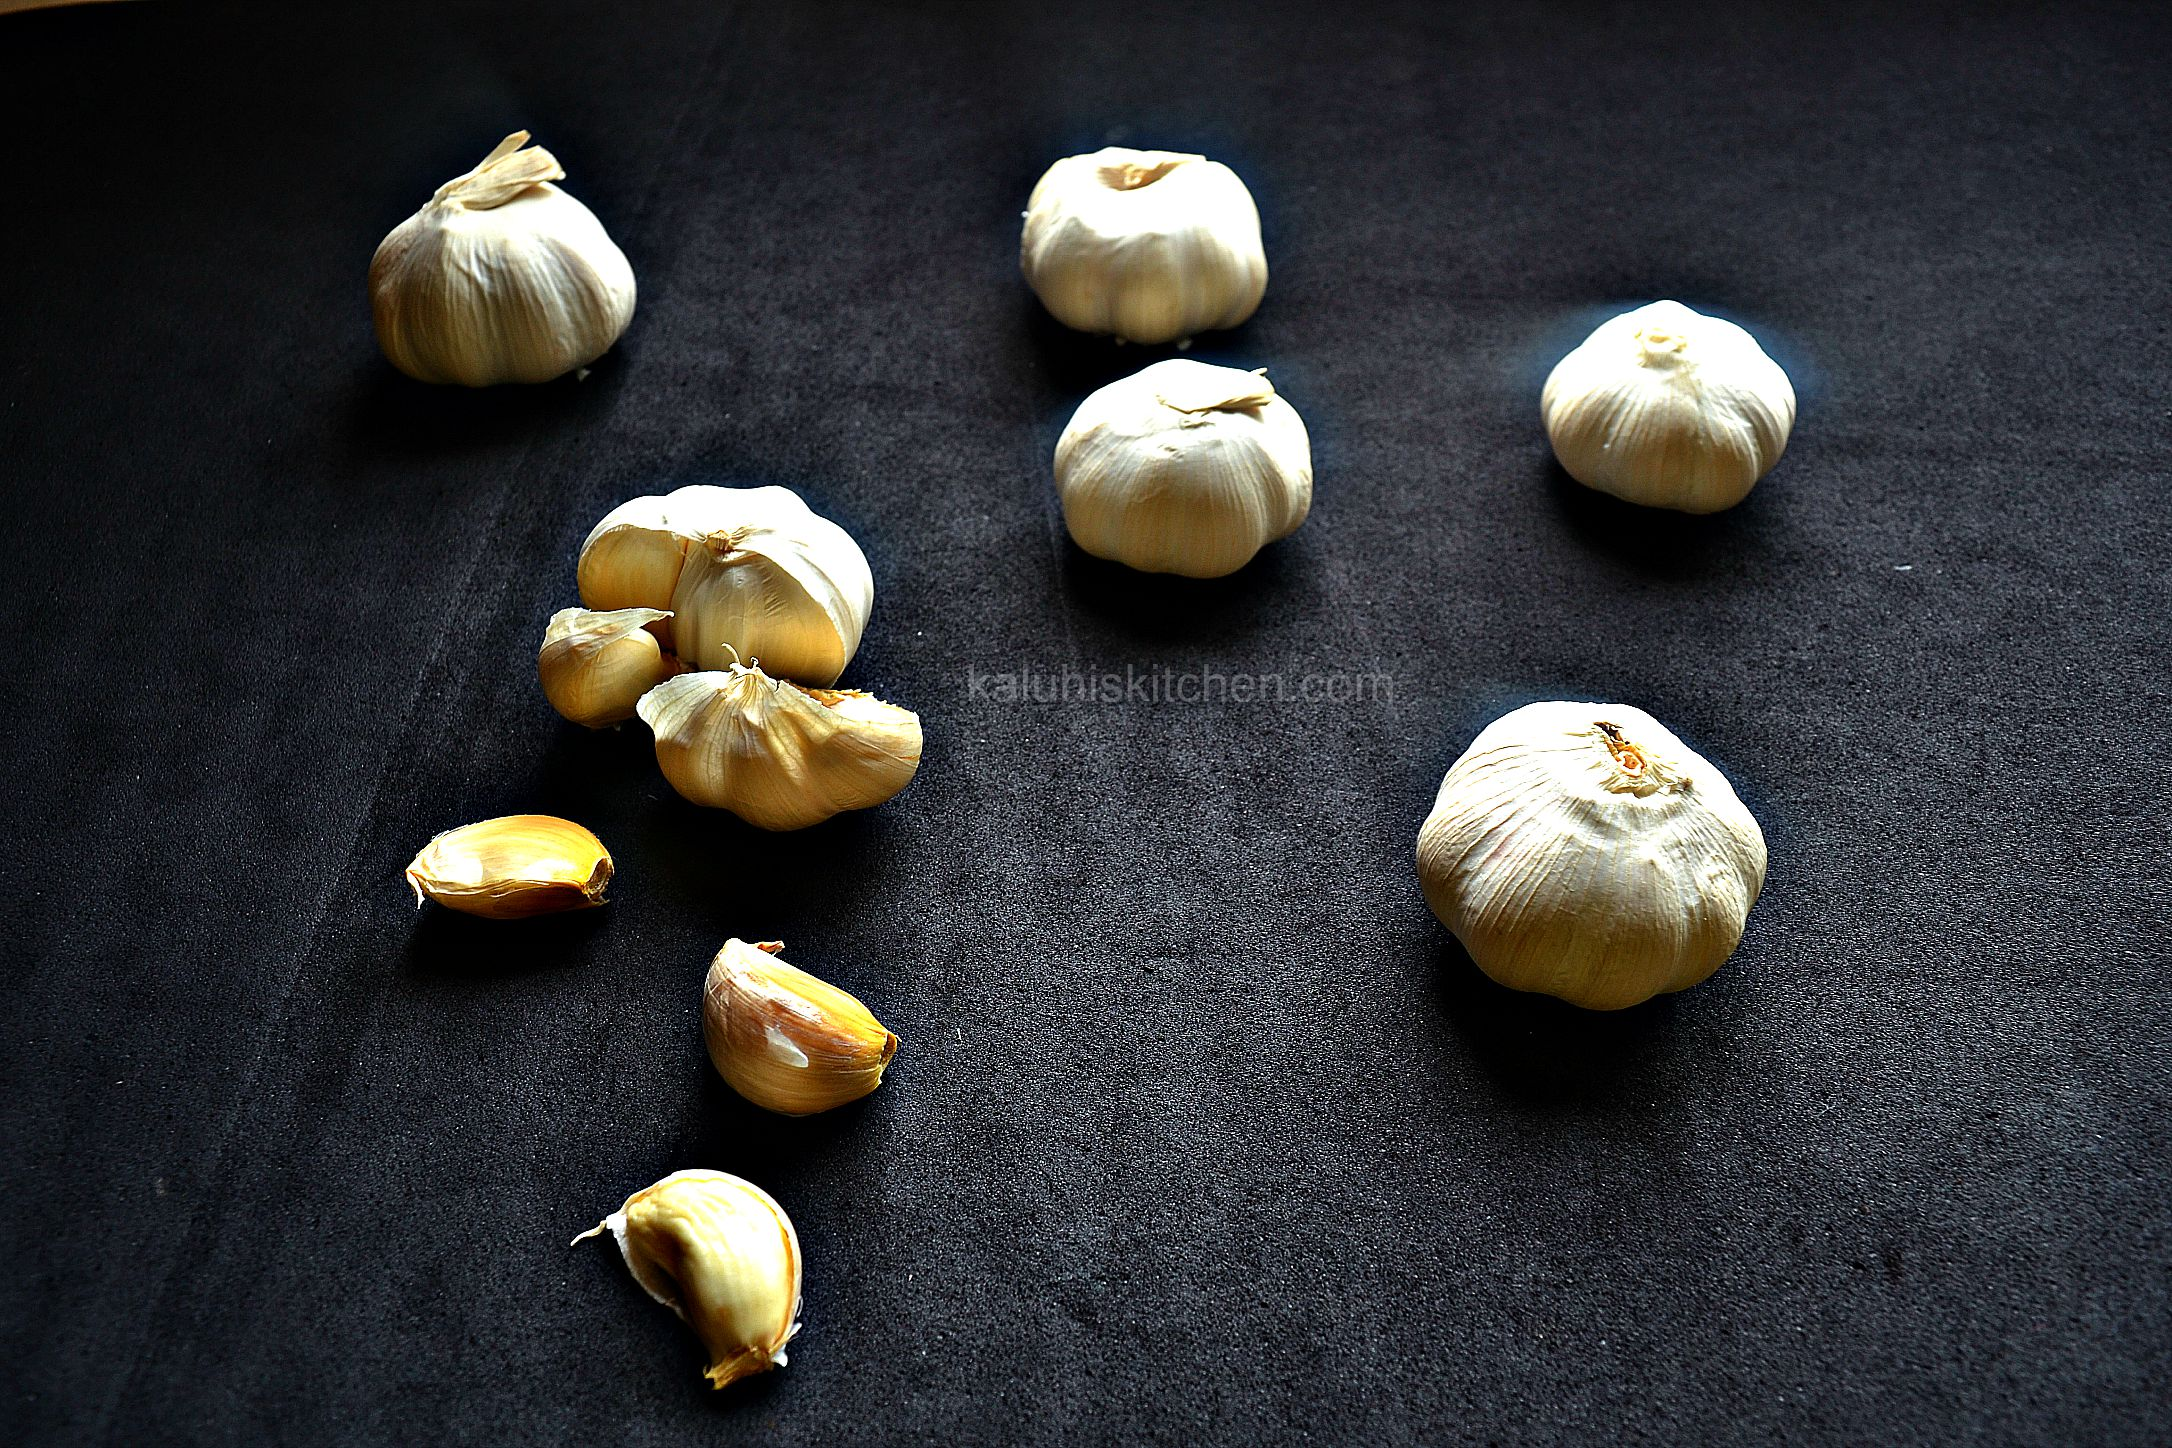 garlic_kaluhiskitchen.com_one of the most reliable ingredient in the kitchen if you are looking to upgrade the taste of your dish.